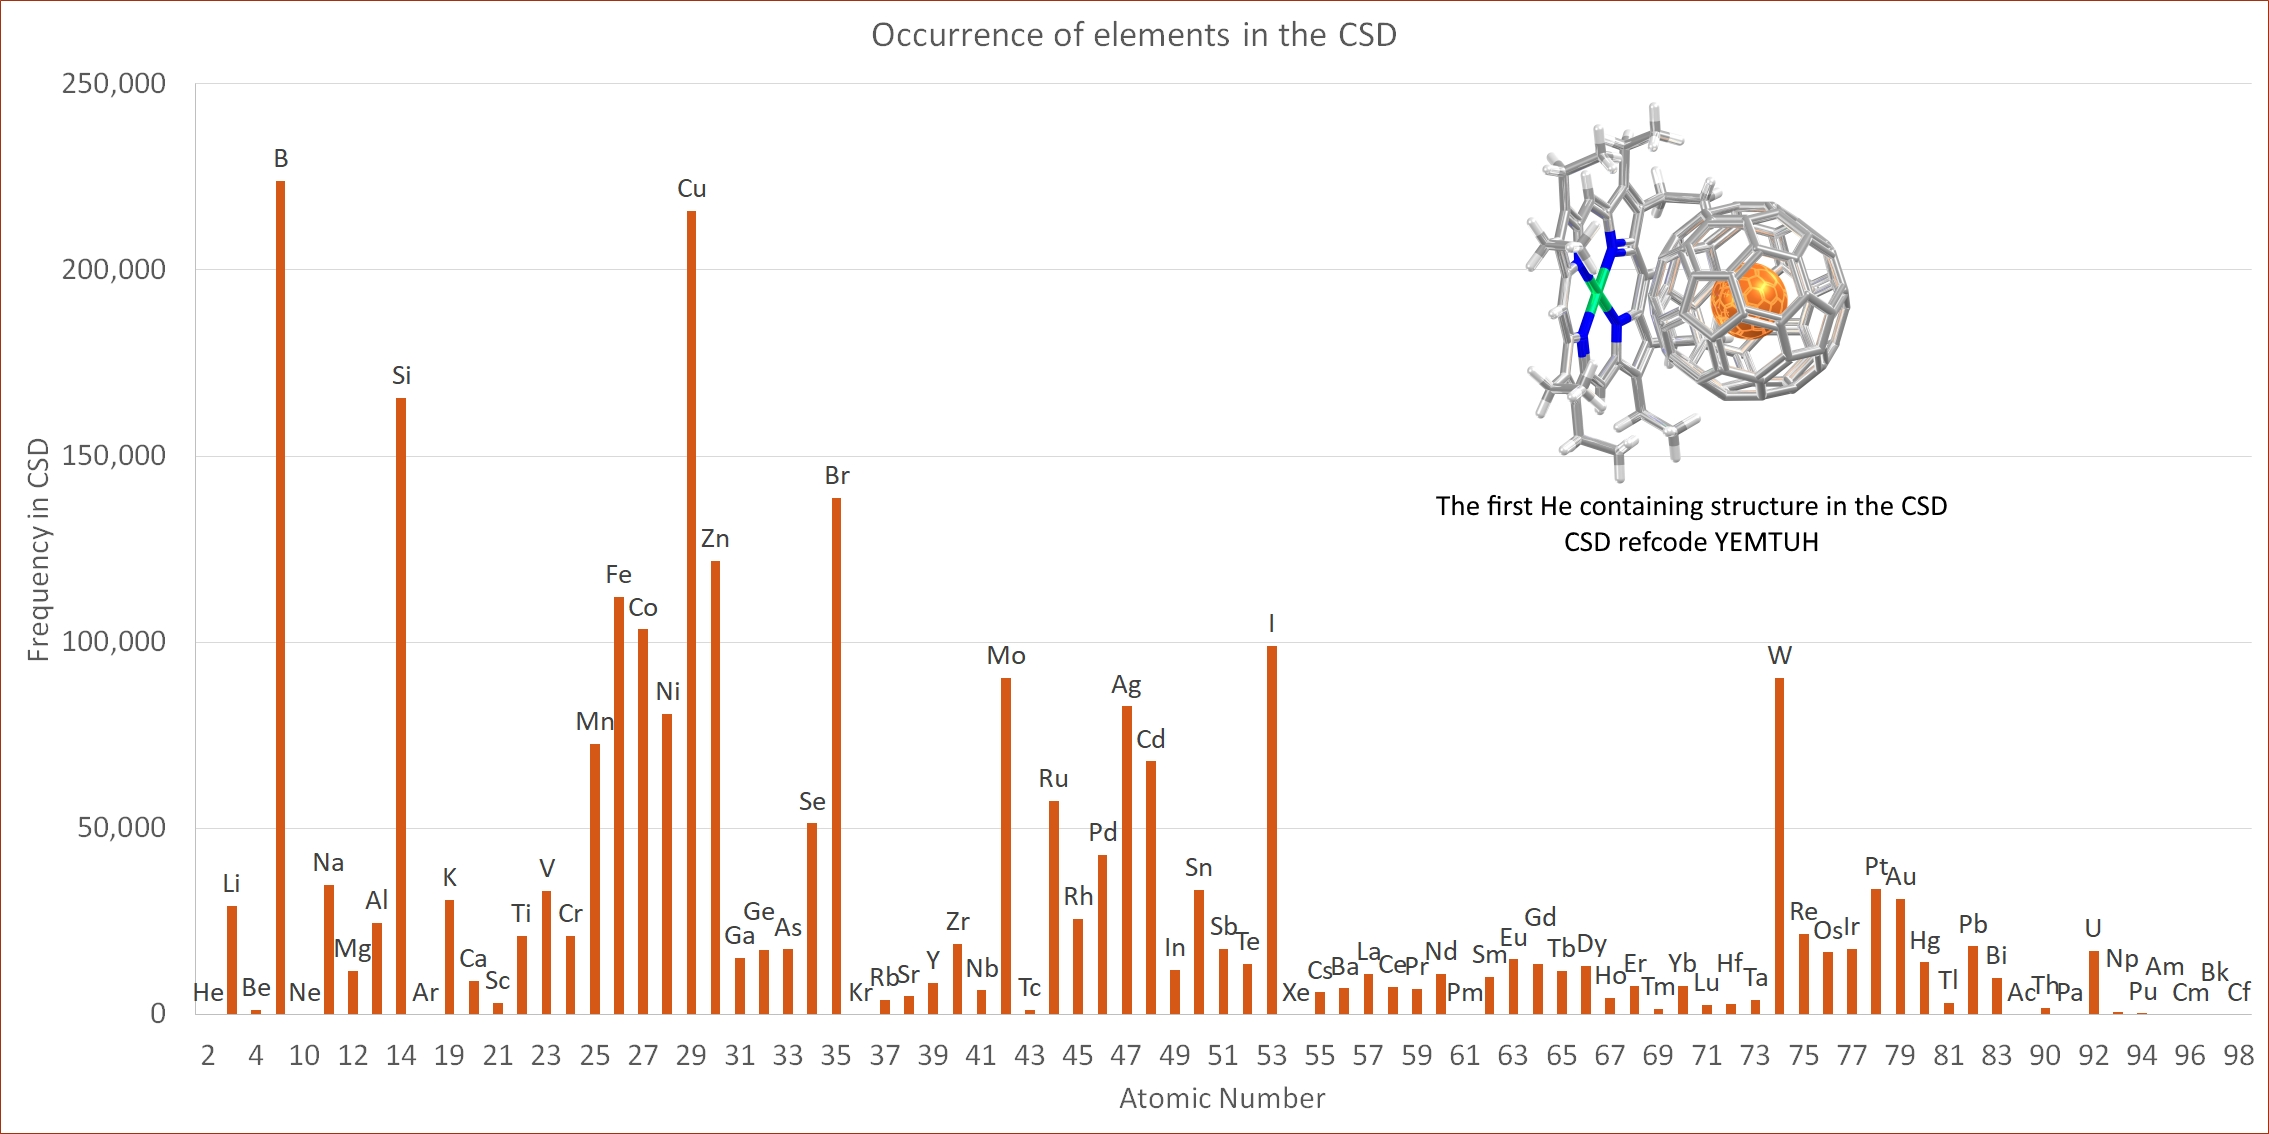 Graph to show the frequency of occurrence of elements in the Periodic Table with a frequency between 0 and 250,000.